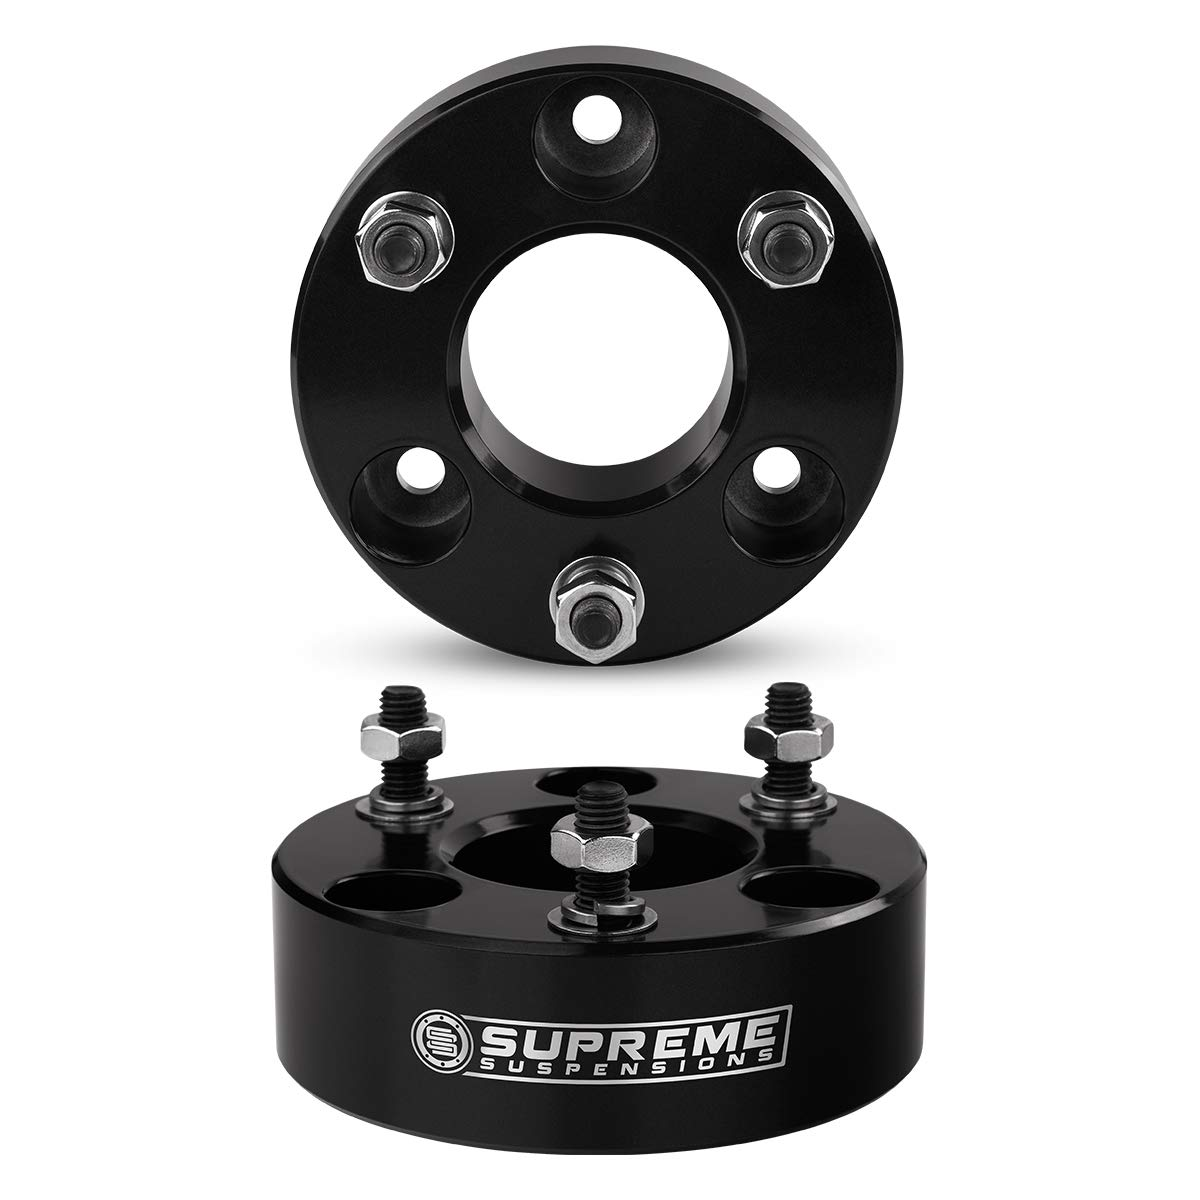 Supreme Suspensions PRO Black and Silver Full Leveling Kit for 2009-2012 Dodge Ram 1500 3.5 Front and 2 Rear Max Leveling Lift Kit 4WD T6 Aircraft Billet